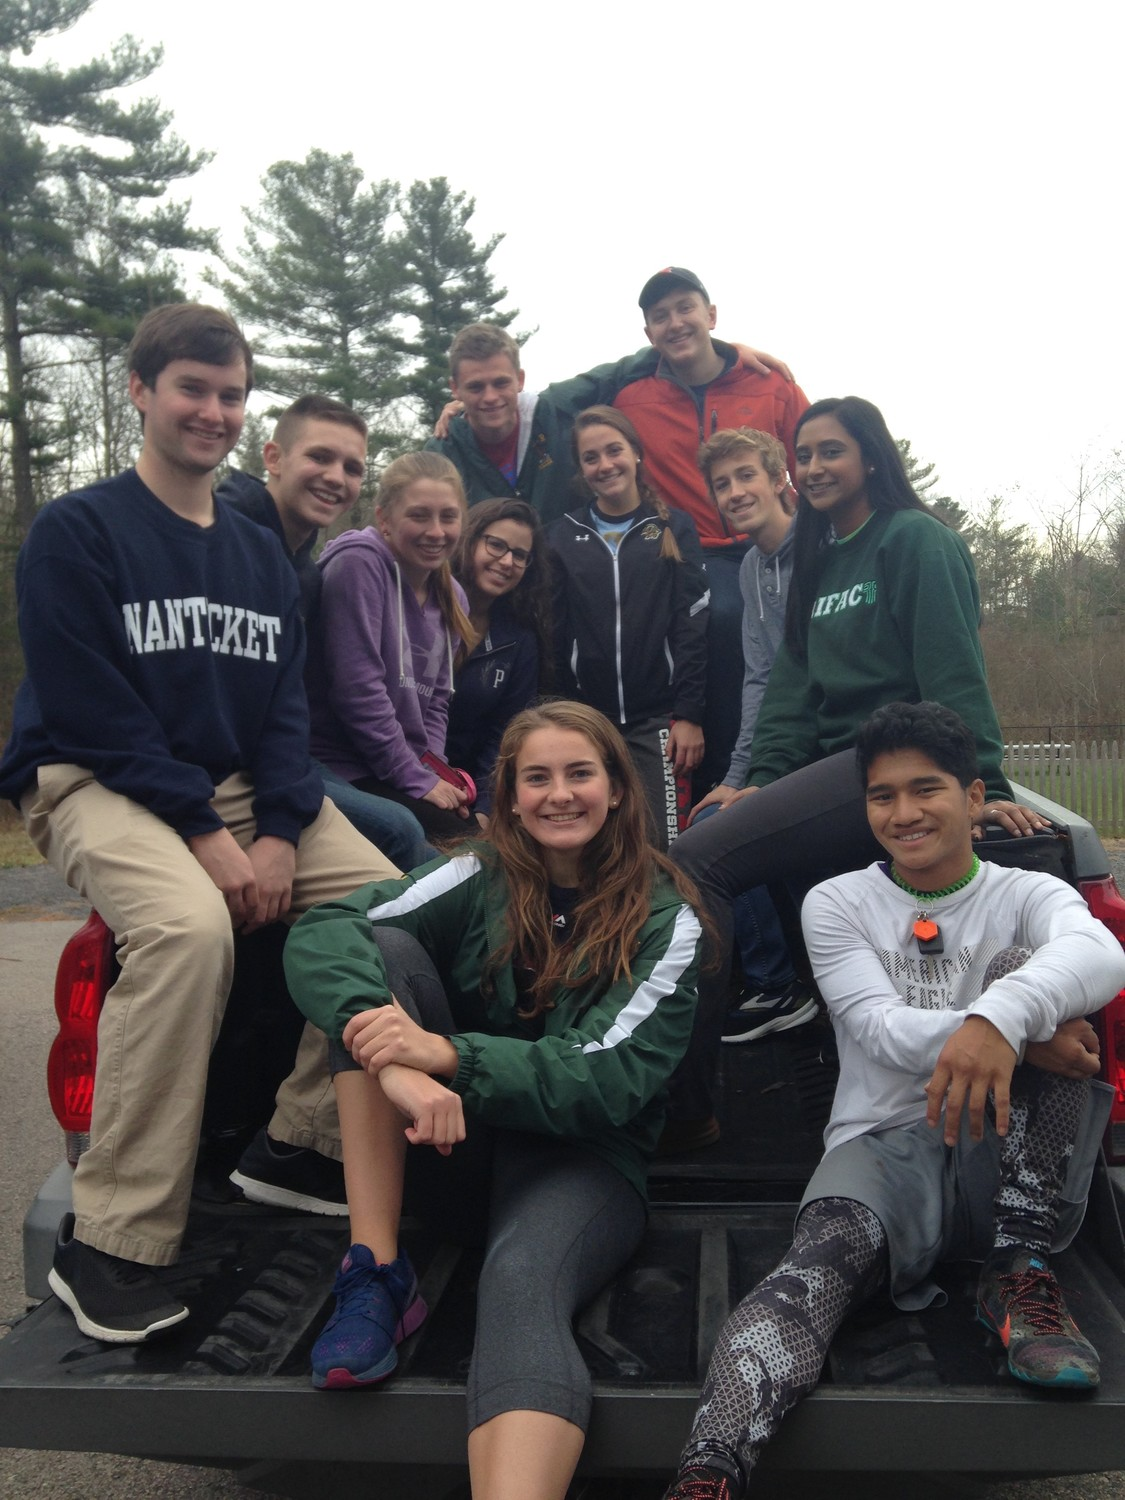 Joseph Reed, Owen Conti, Ian Sullivan, Sam DuBois, Peyton Maccarone, Caitlin Carro, Jackie Kucia, Kyle O'Connell, Hannah Philip, Megan Alves, and Nate Rogers are some seniors that spearheaded the can drive and pose after they unloaded a truck full of goods""